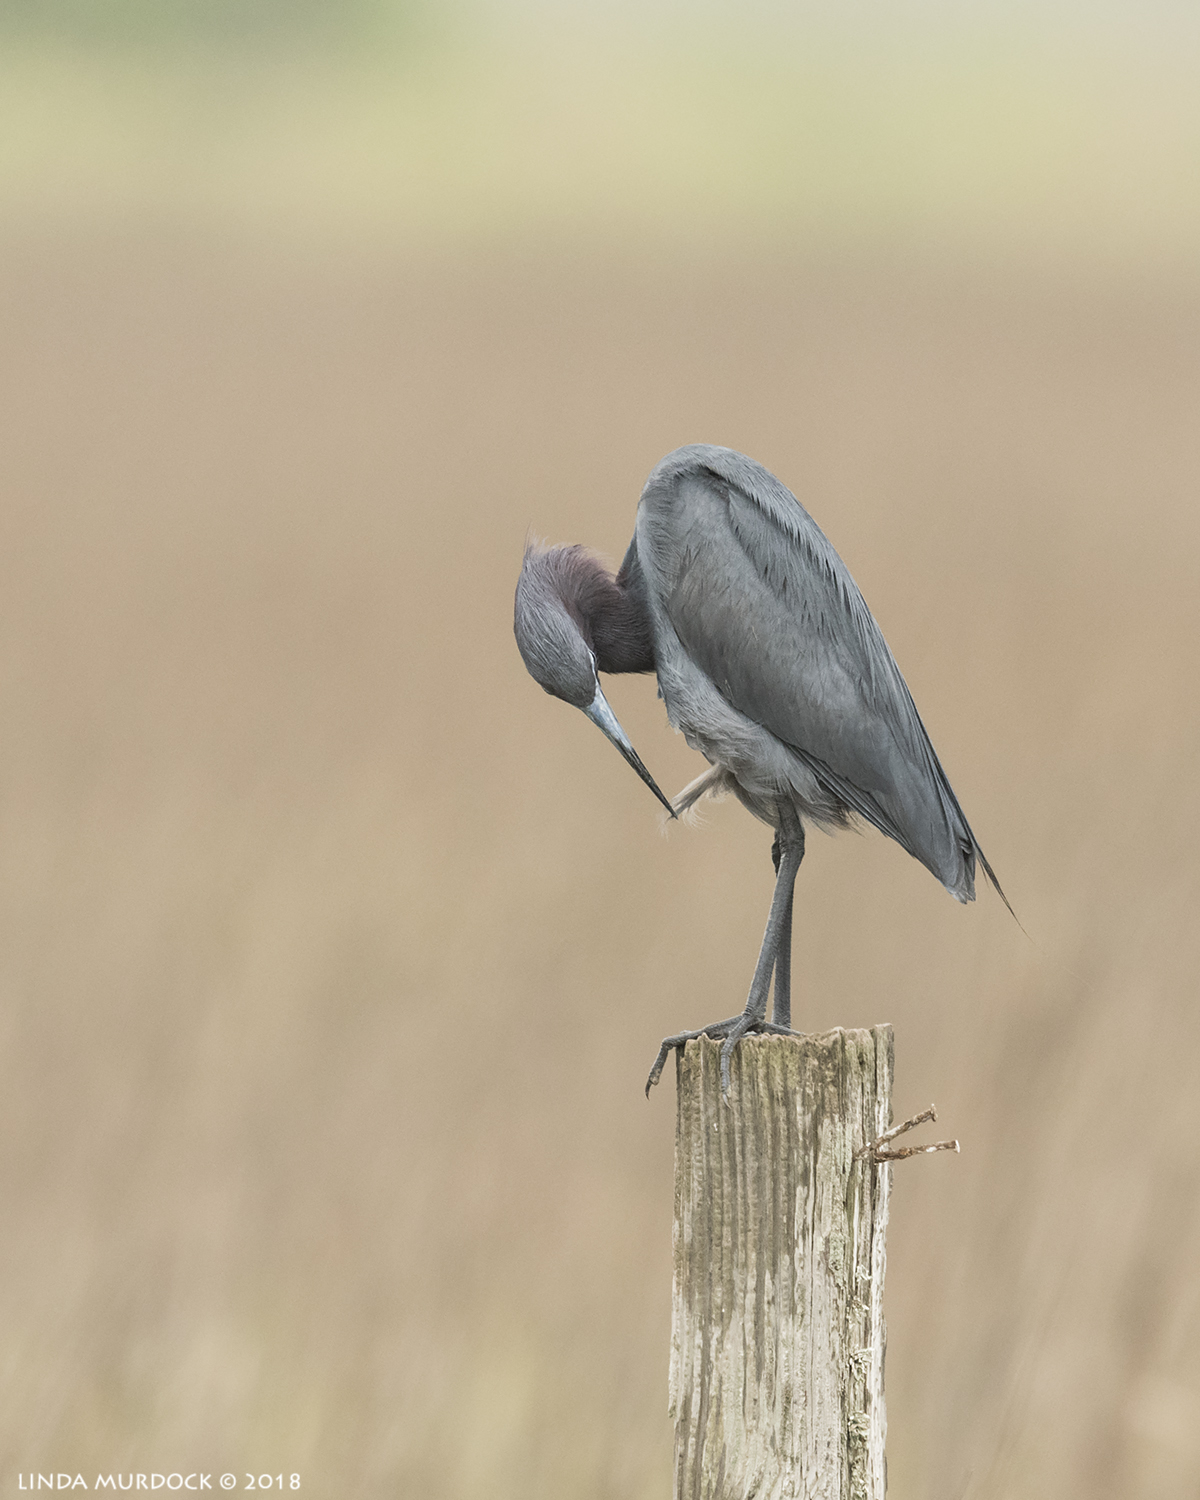 Little Blue Heron preening on a fence post at 700mm Nikon D810 with NIKKOR 500mm f/4E VR + Nikon 1.4x TC ~ 1/2000  sec f/7.1 ISO 1600; braced in window